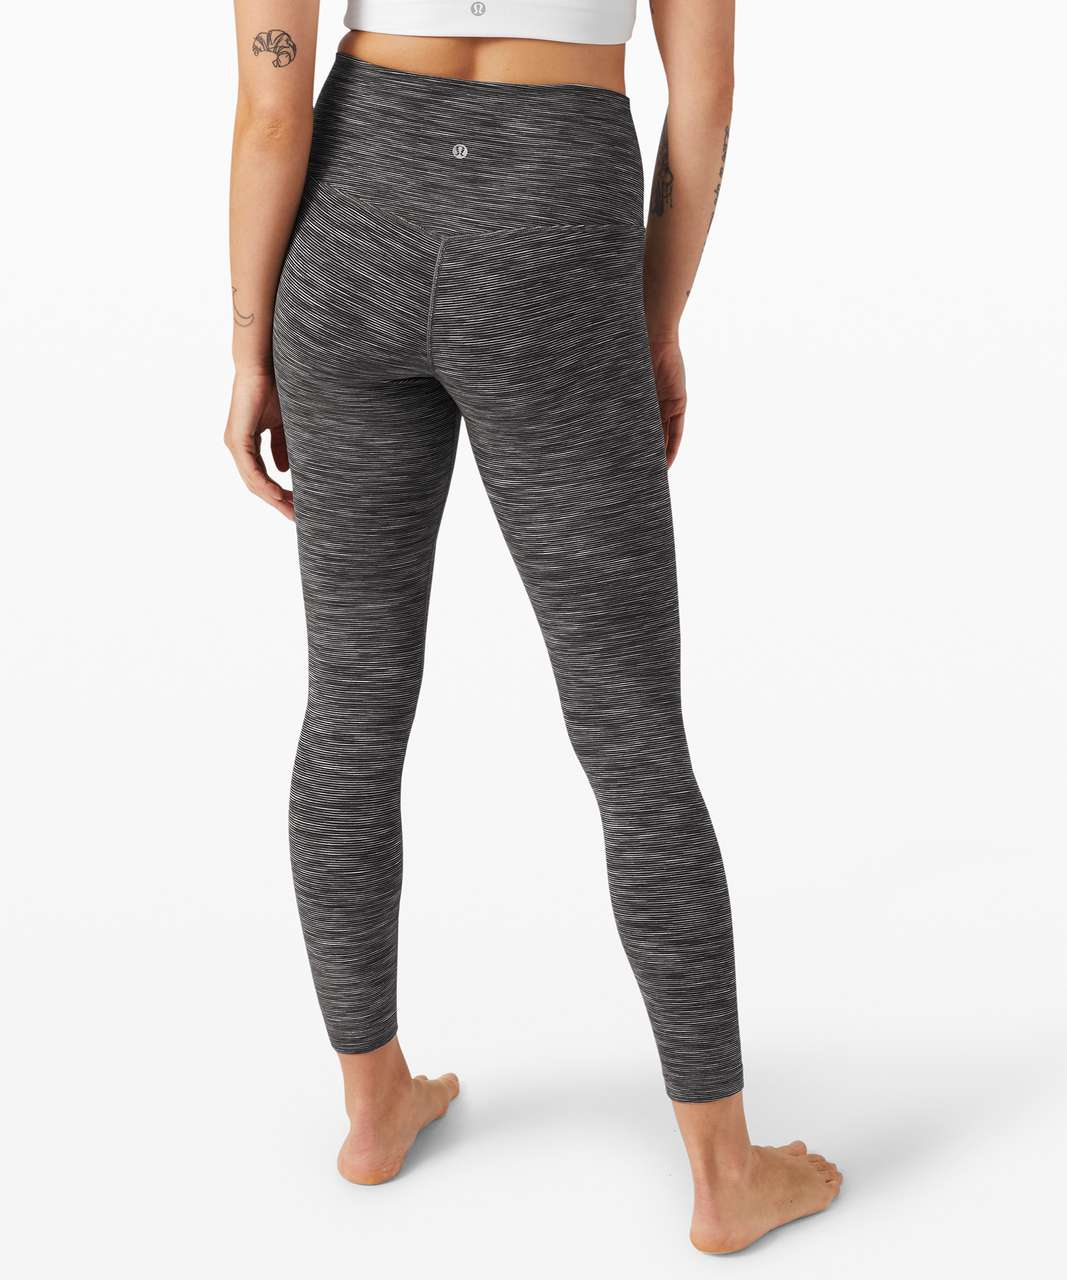 "Lululemon Align™ Pant II 25"" - Wee Are From Space Dark Carbon Ice Grey"